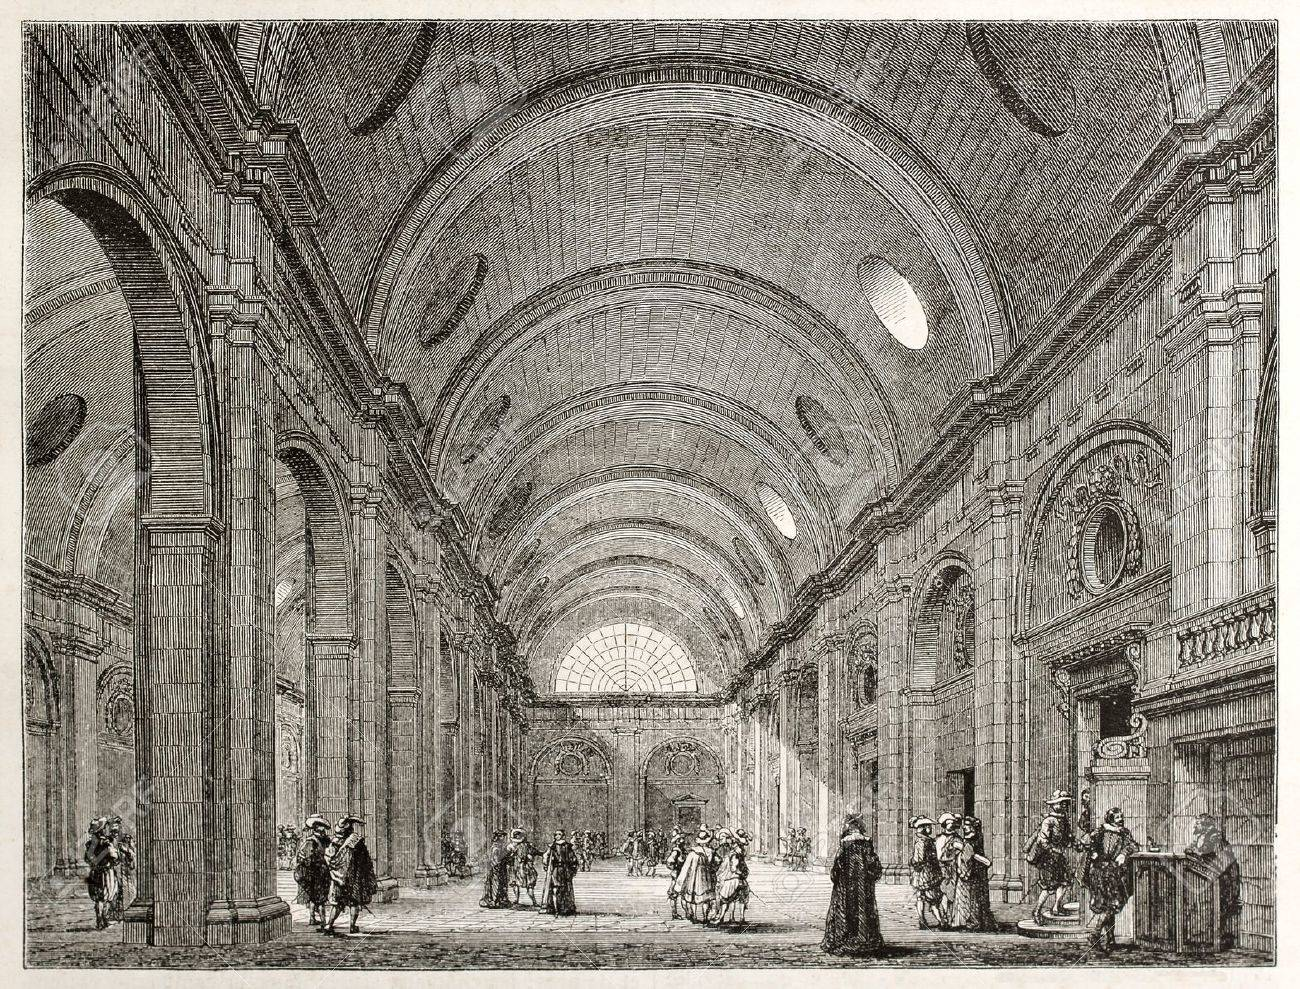 Palais de Justice interior (salle-de-pas-perdus), Paris. Created by Best, Leloir, Hotelin and Regnier, published on Magasin Pittoresque, Paris, 1845 Stock Photo - 15270544